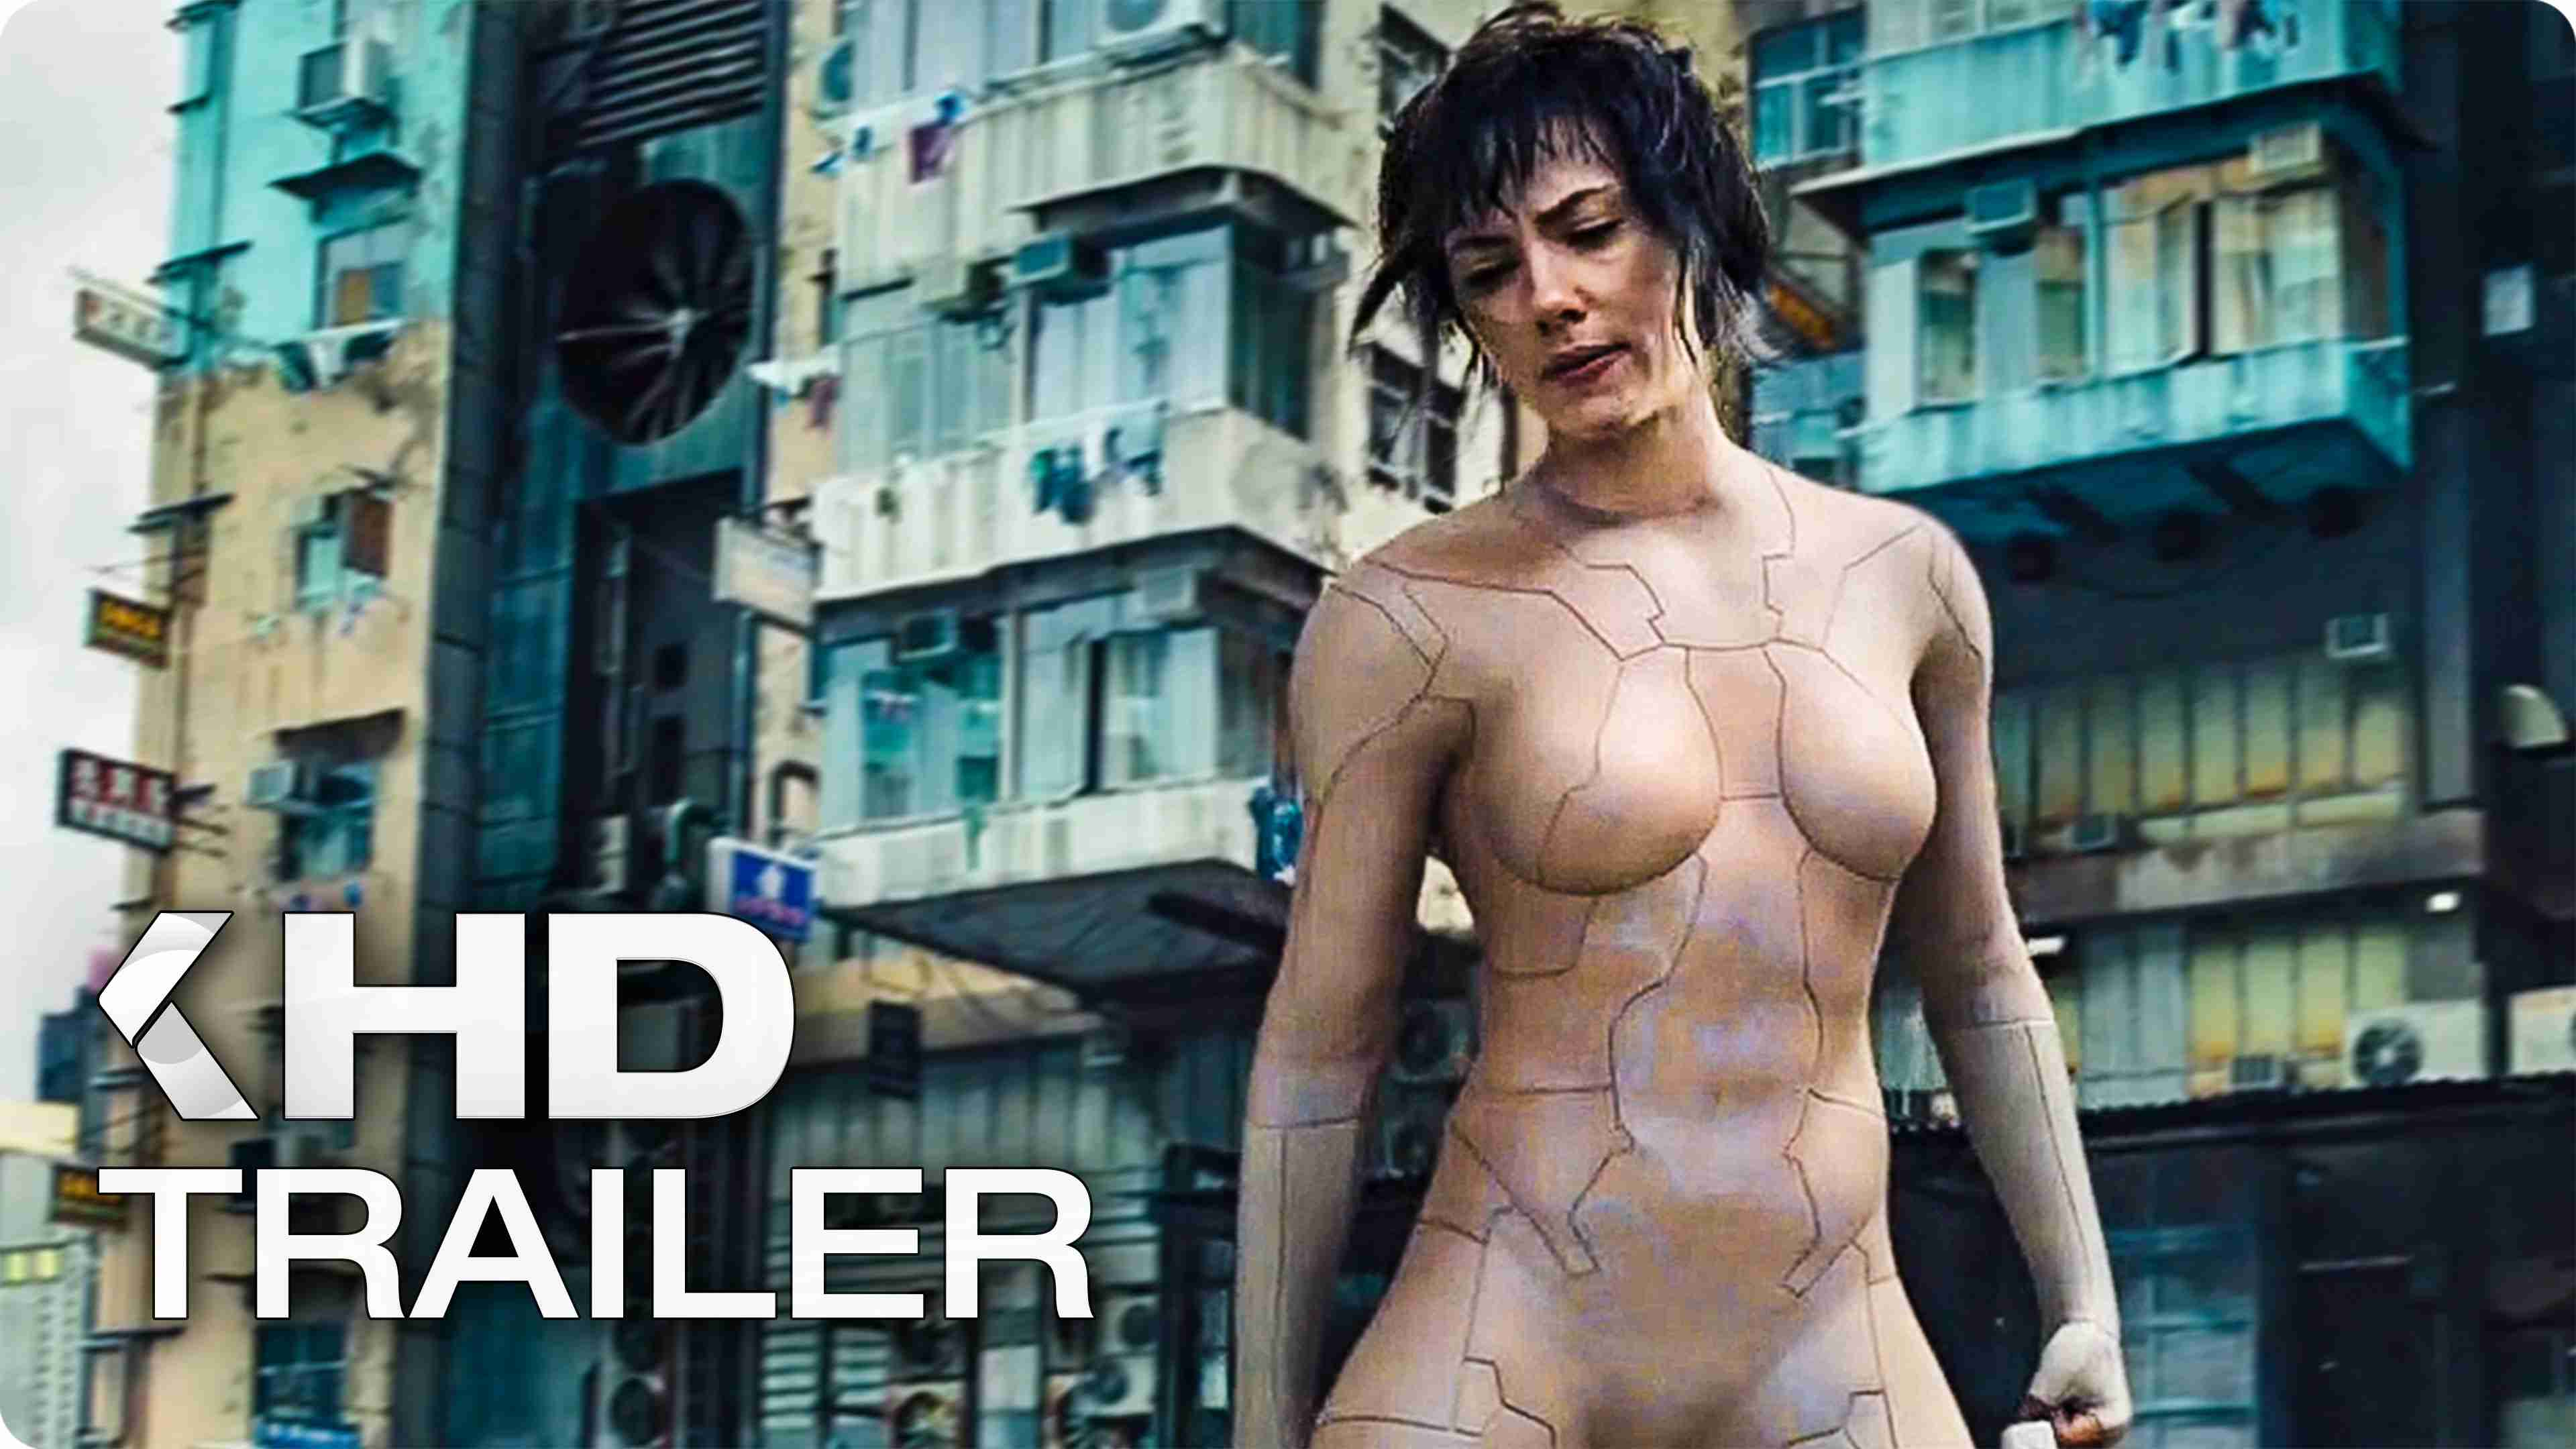 GHOST IN THE SHELL Trailer (2017) - YouTube